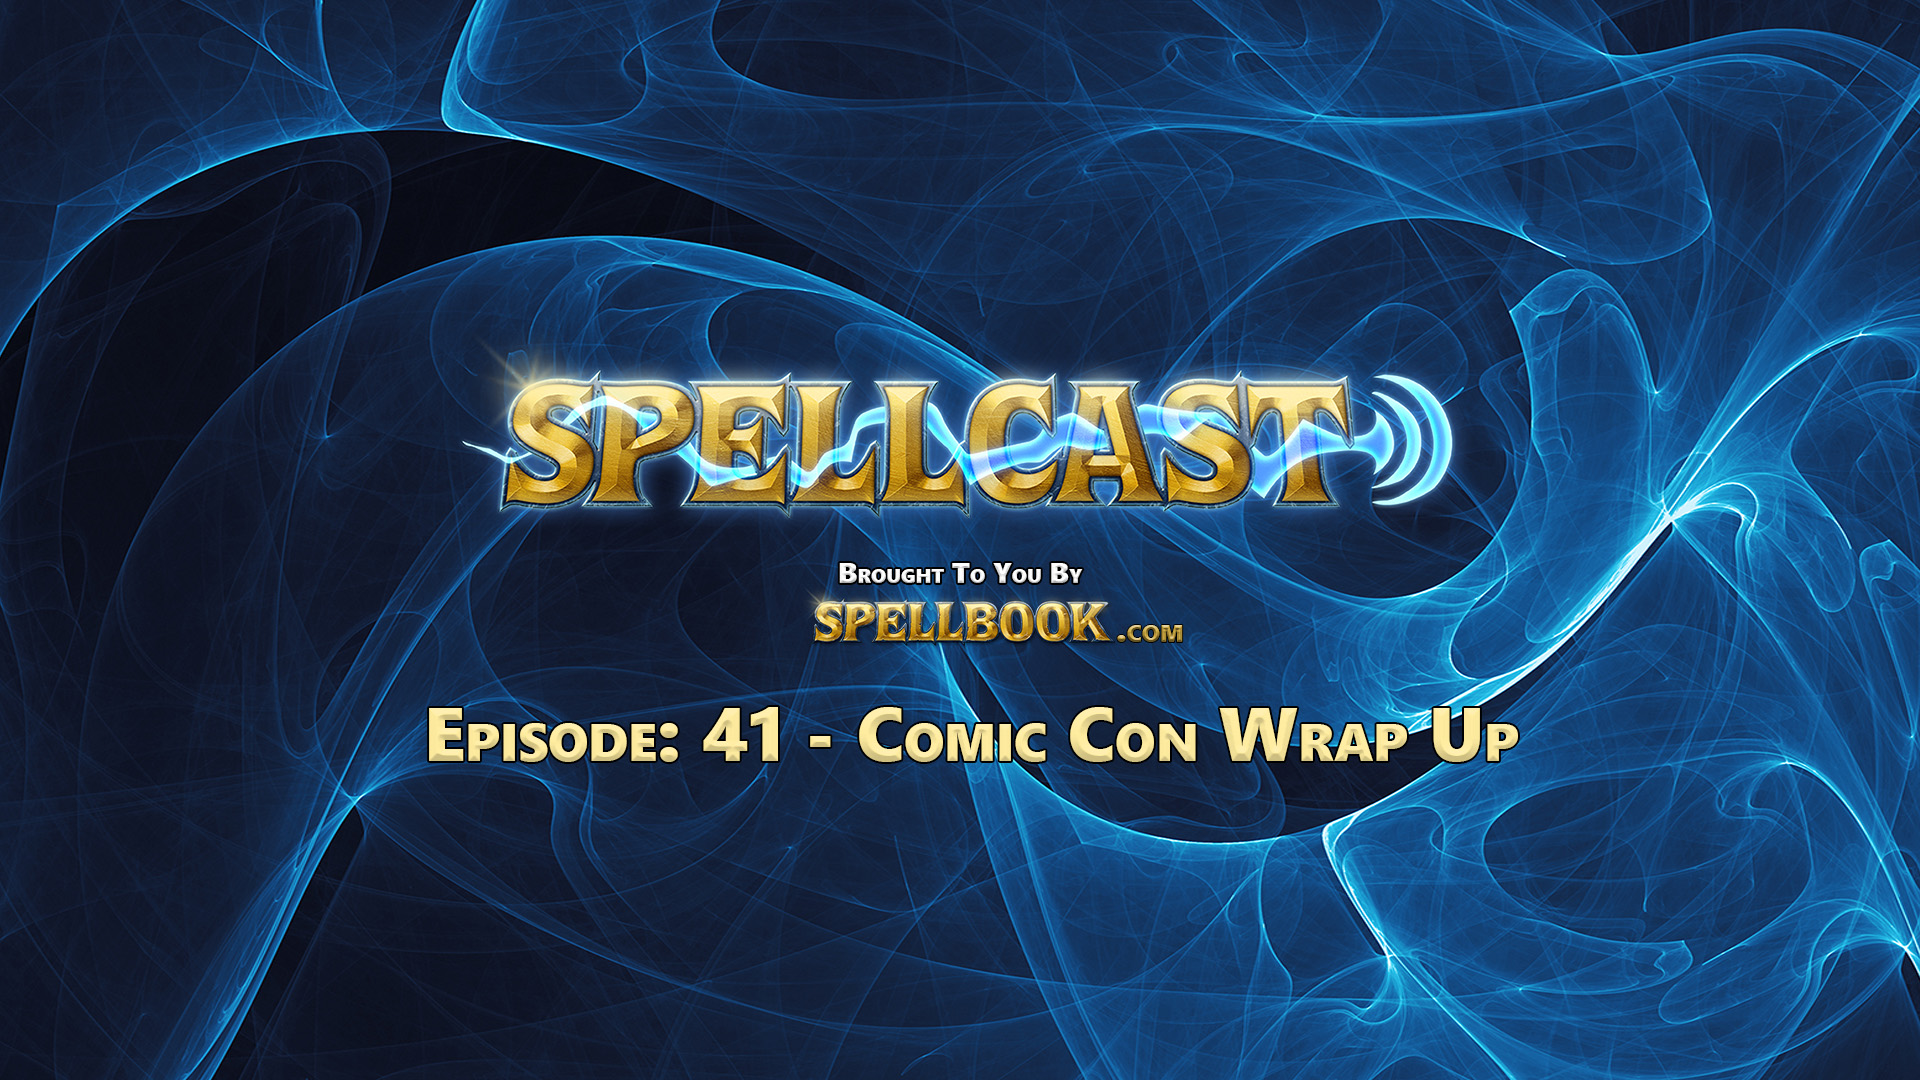 Spellcast Episode: 41 - Comic Con Wrap Up